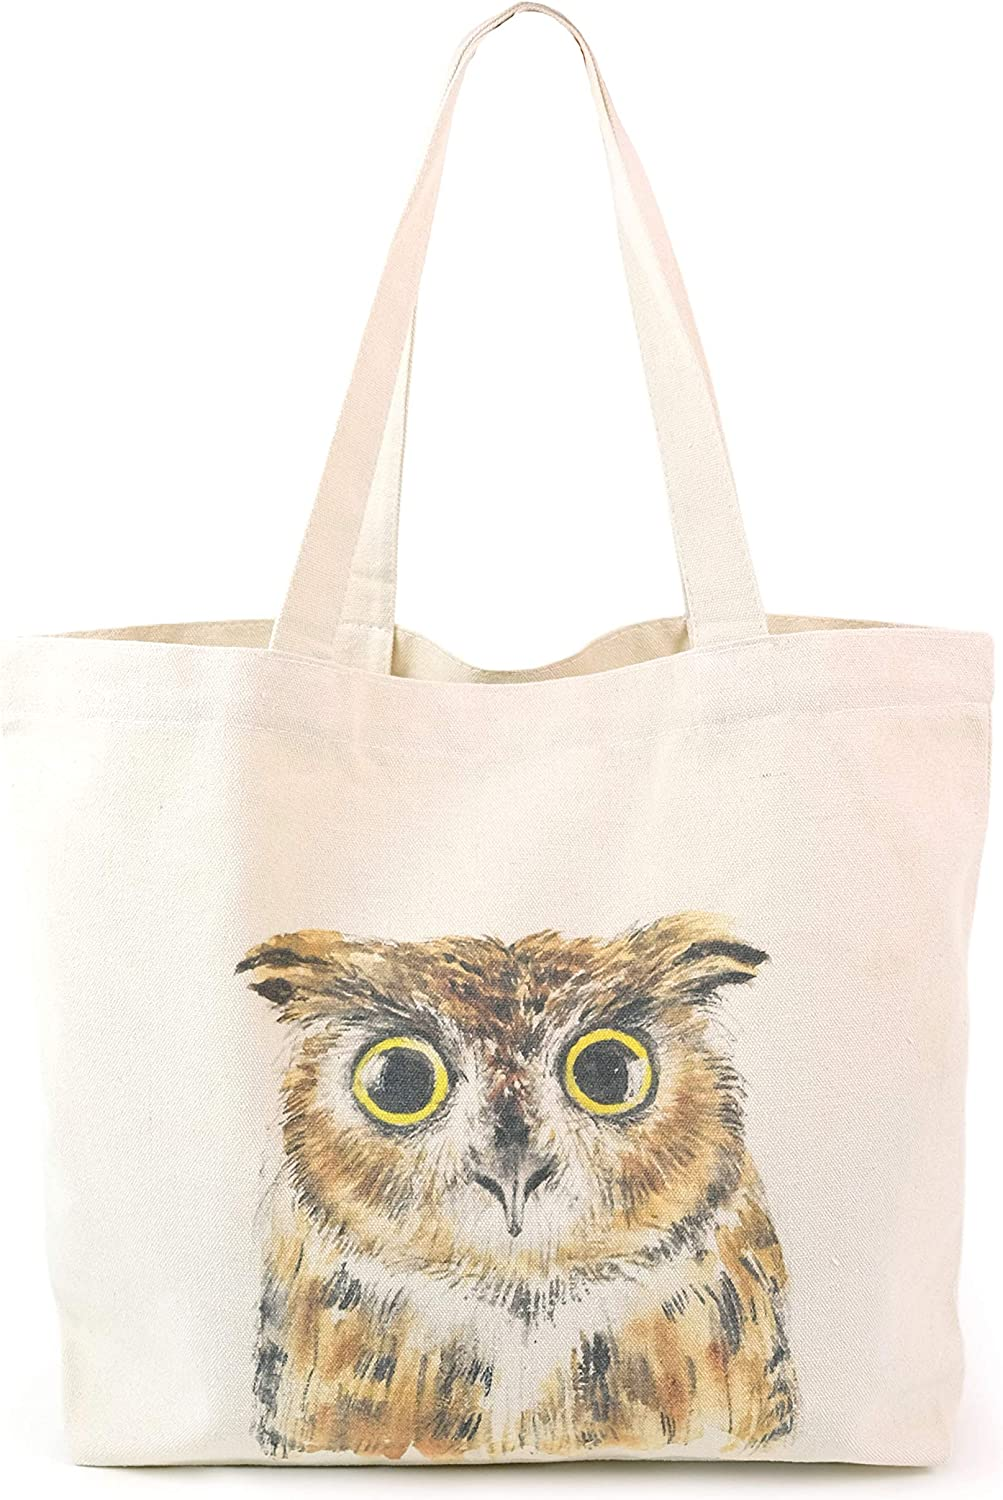 Animal Plants Canvas Tote Bag, Heavy Duty Gusseted, 100% Natural Cotton, for Shopping, Grocery, Laptop, School Books